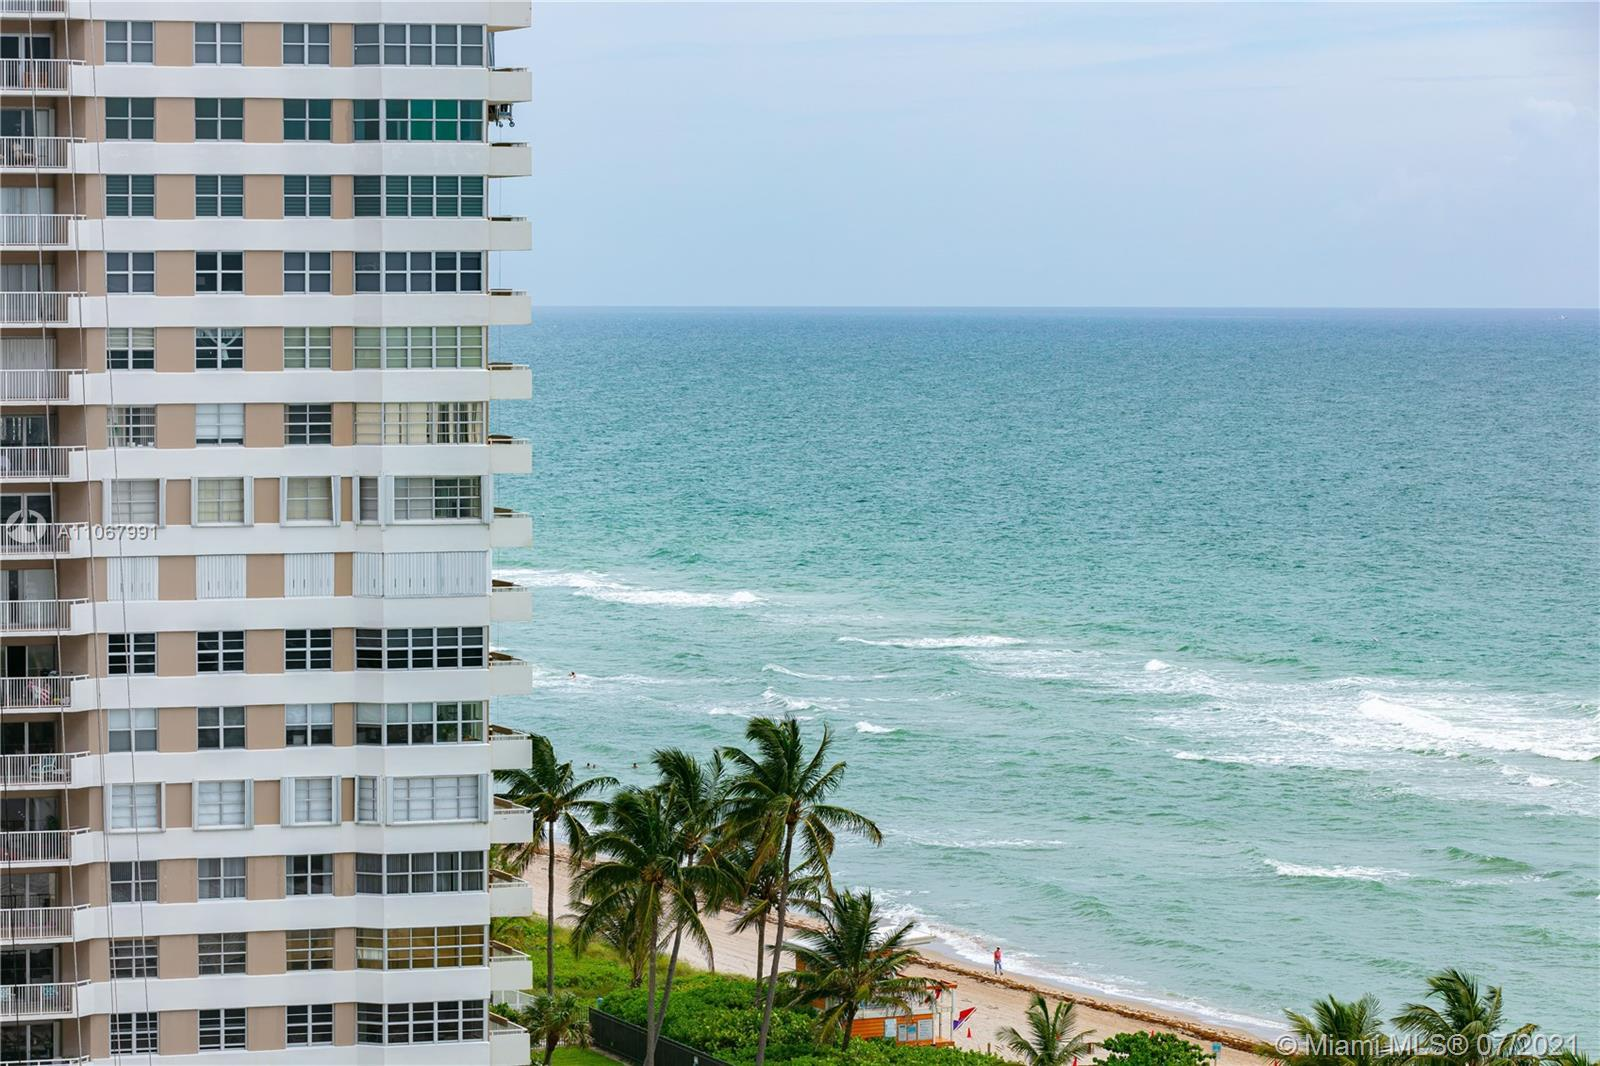 Move-in ready convertible unit with split floor plan layout and Ocean views! This Oceanfront condo h